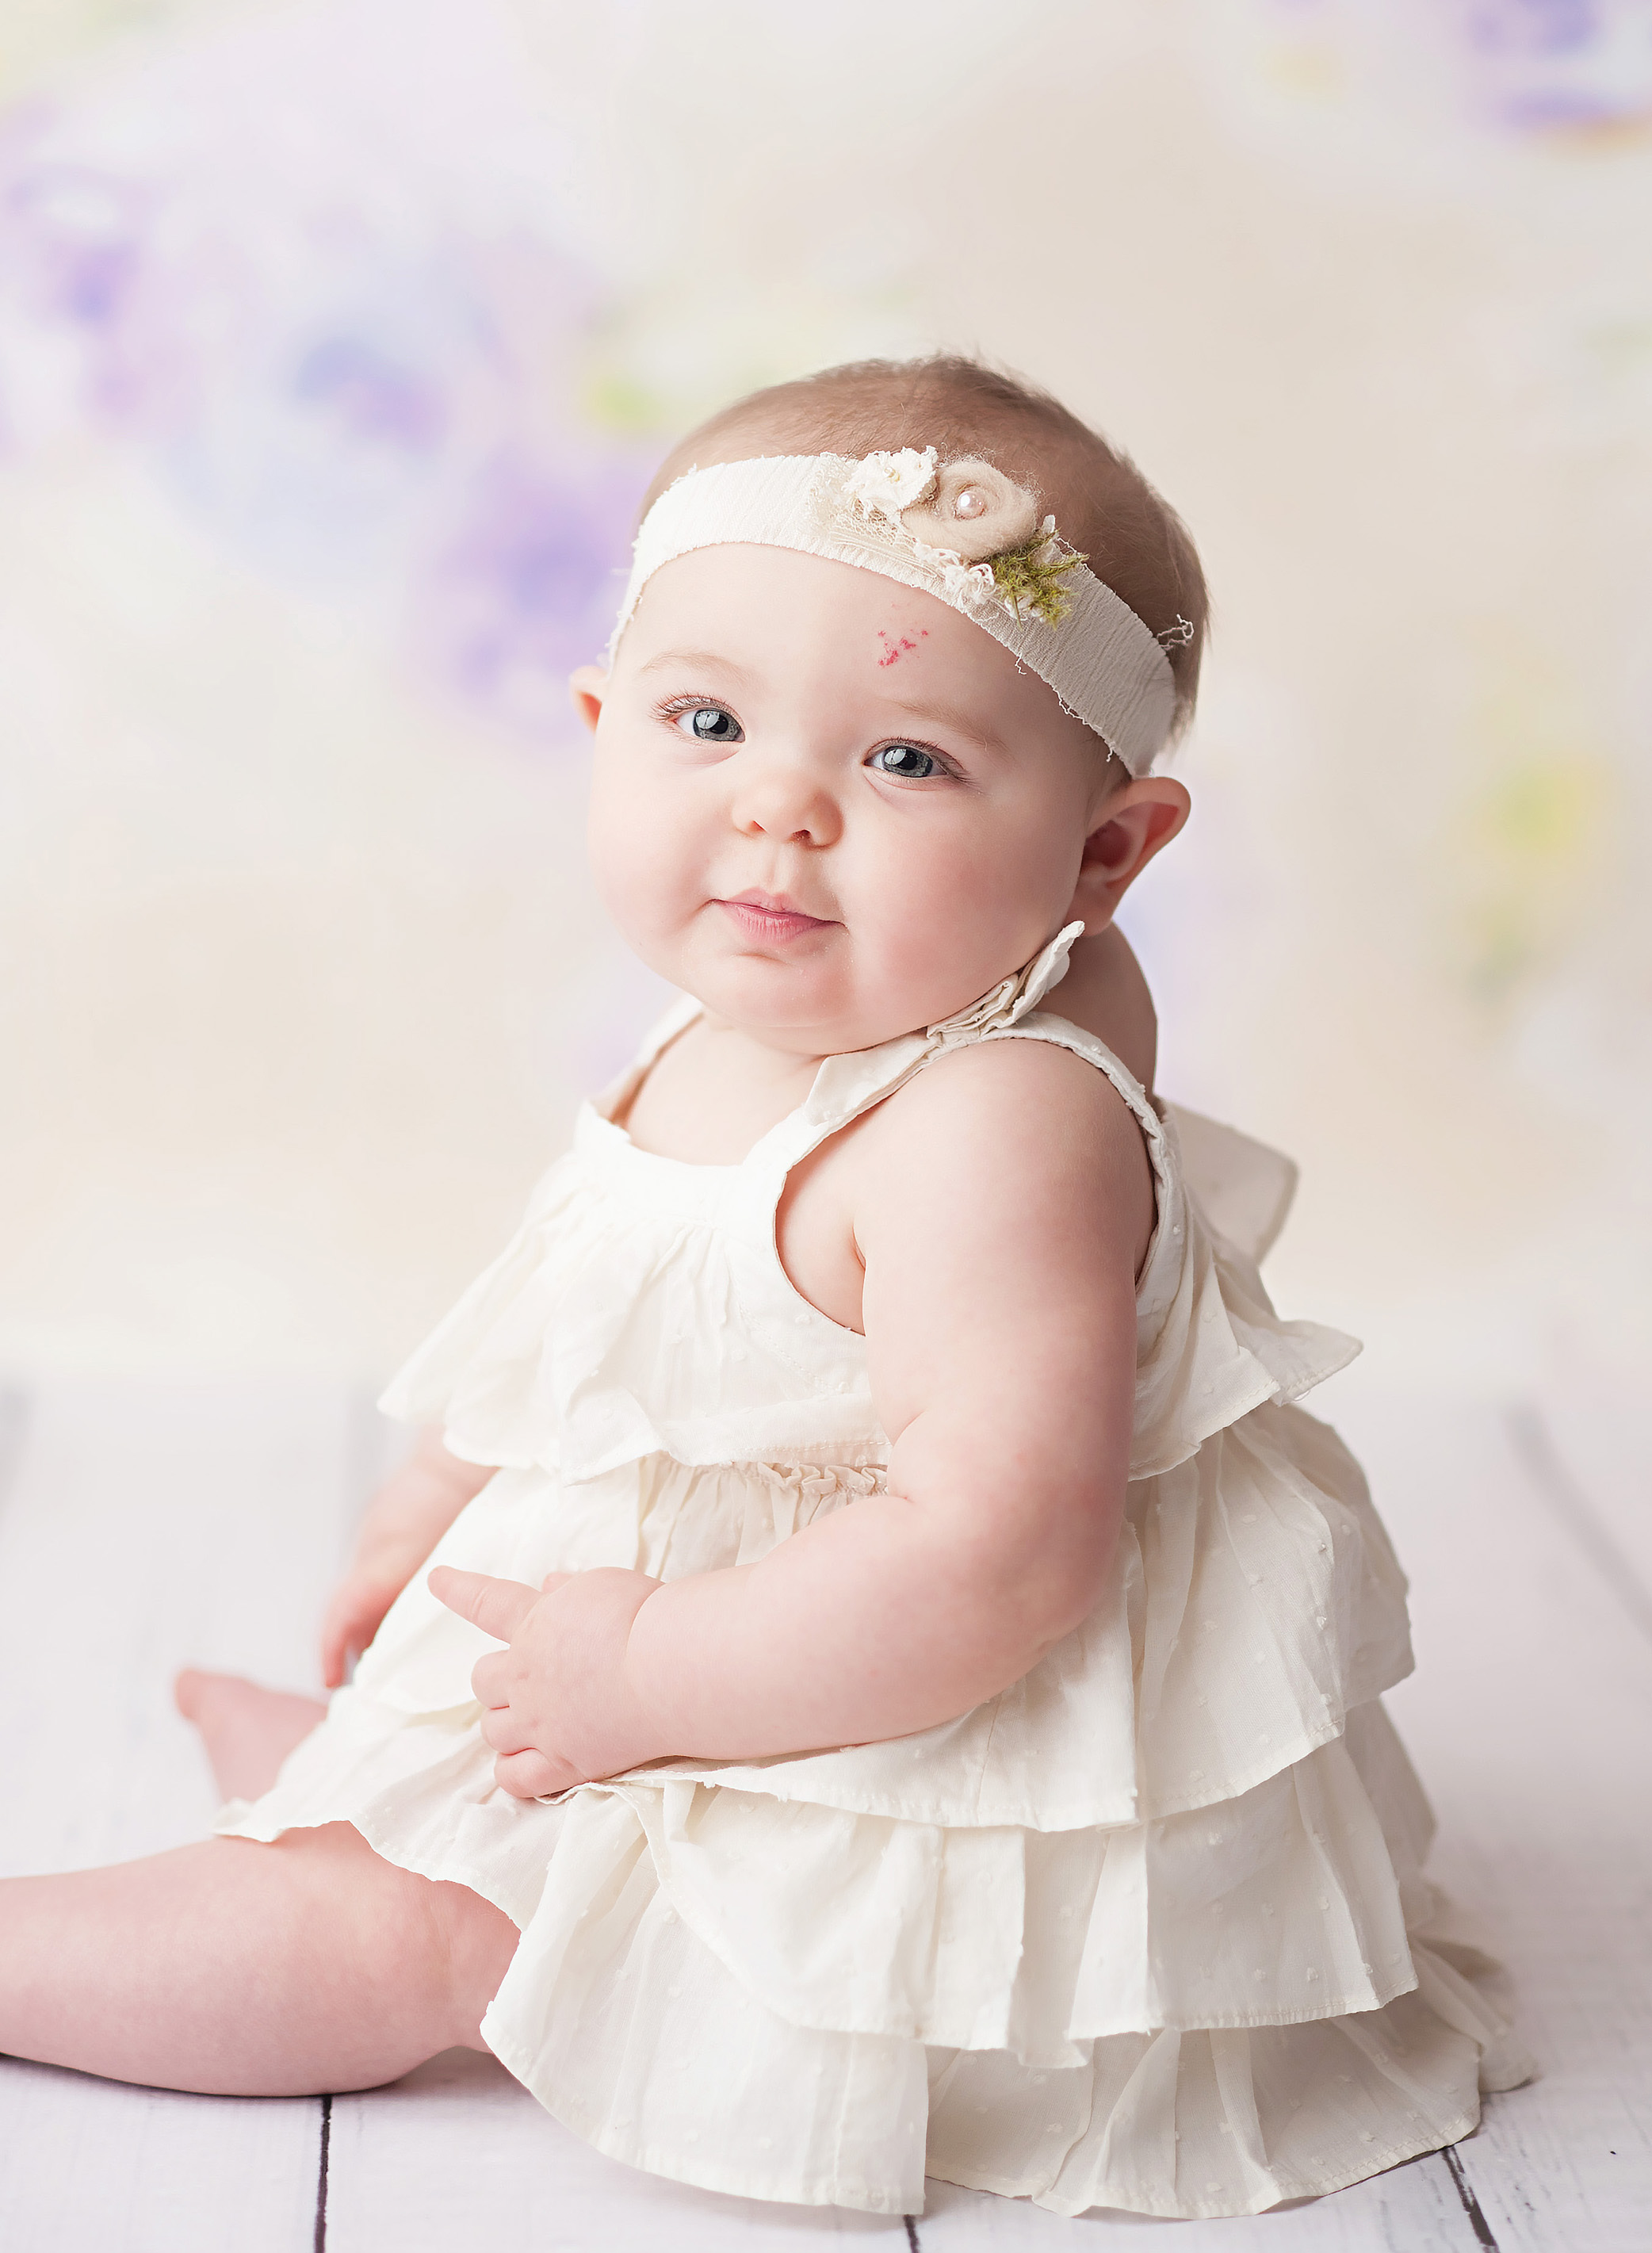 6 month old girl in white dress